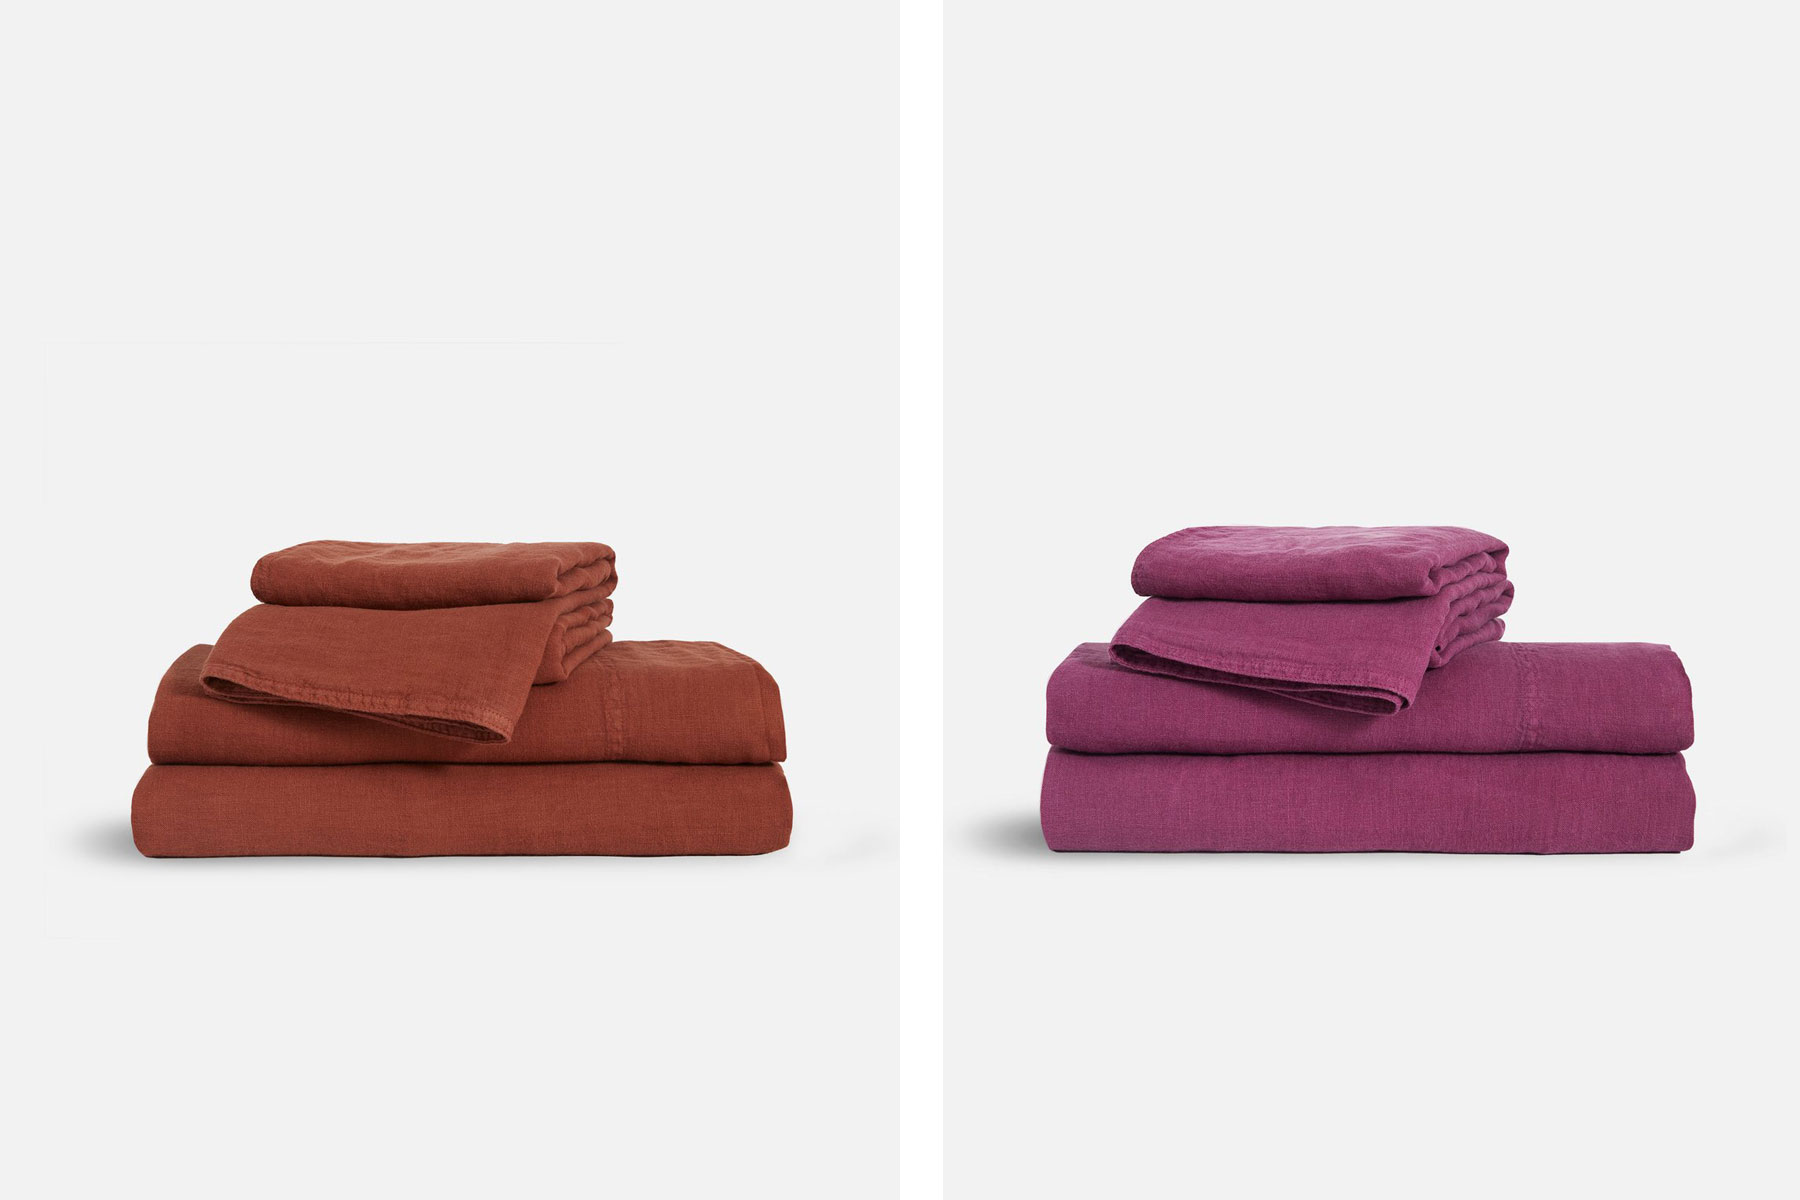 Terracotta and fuchsia sheets